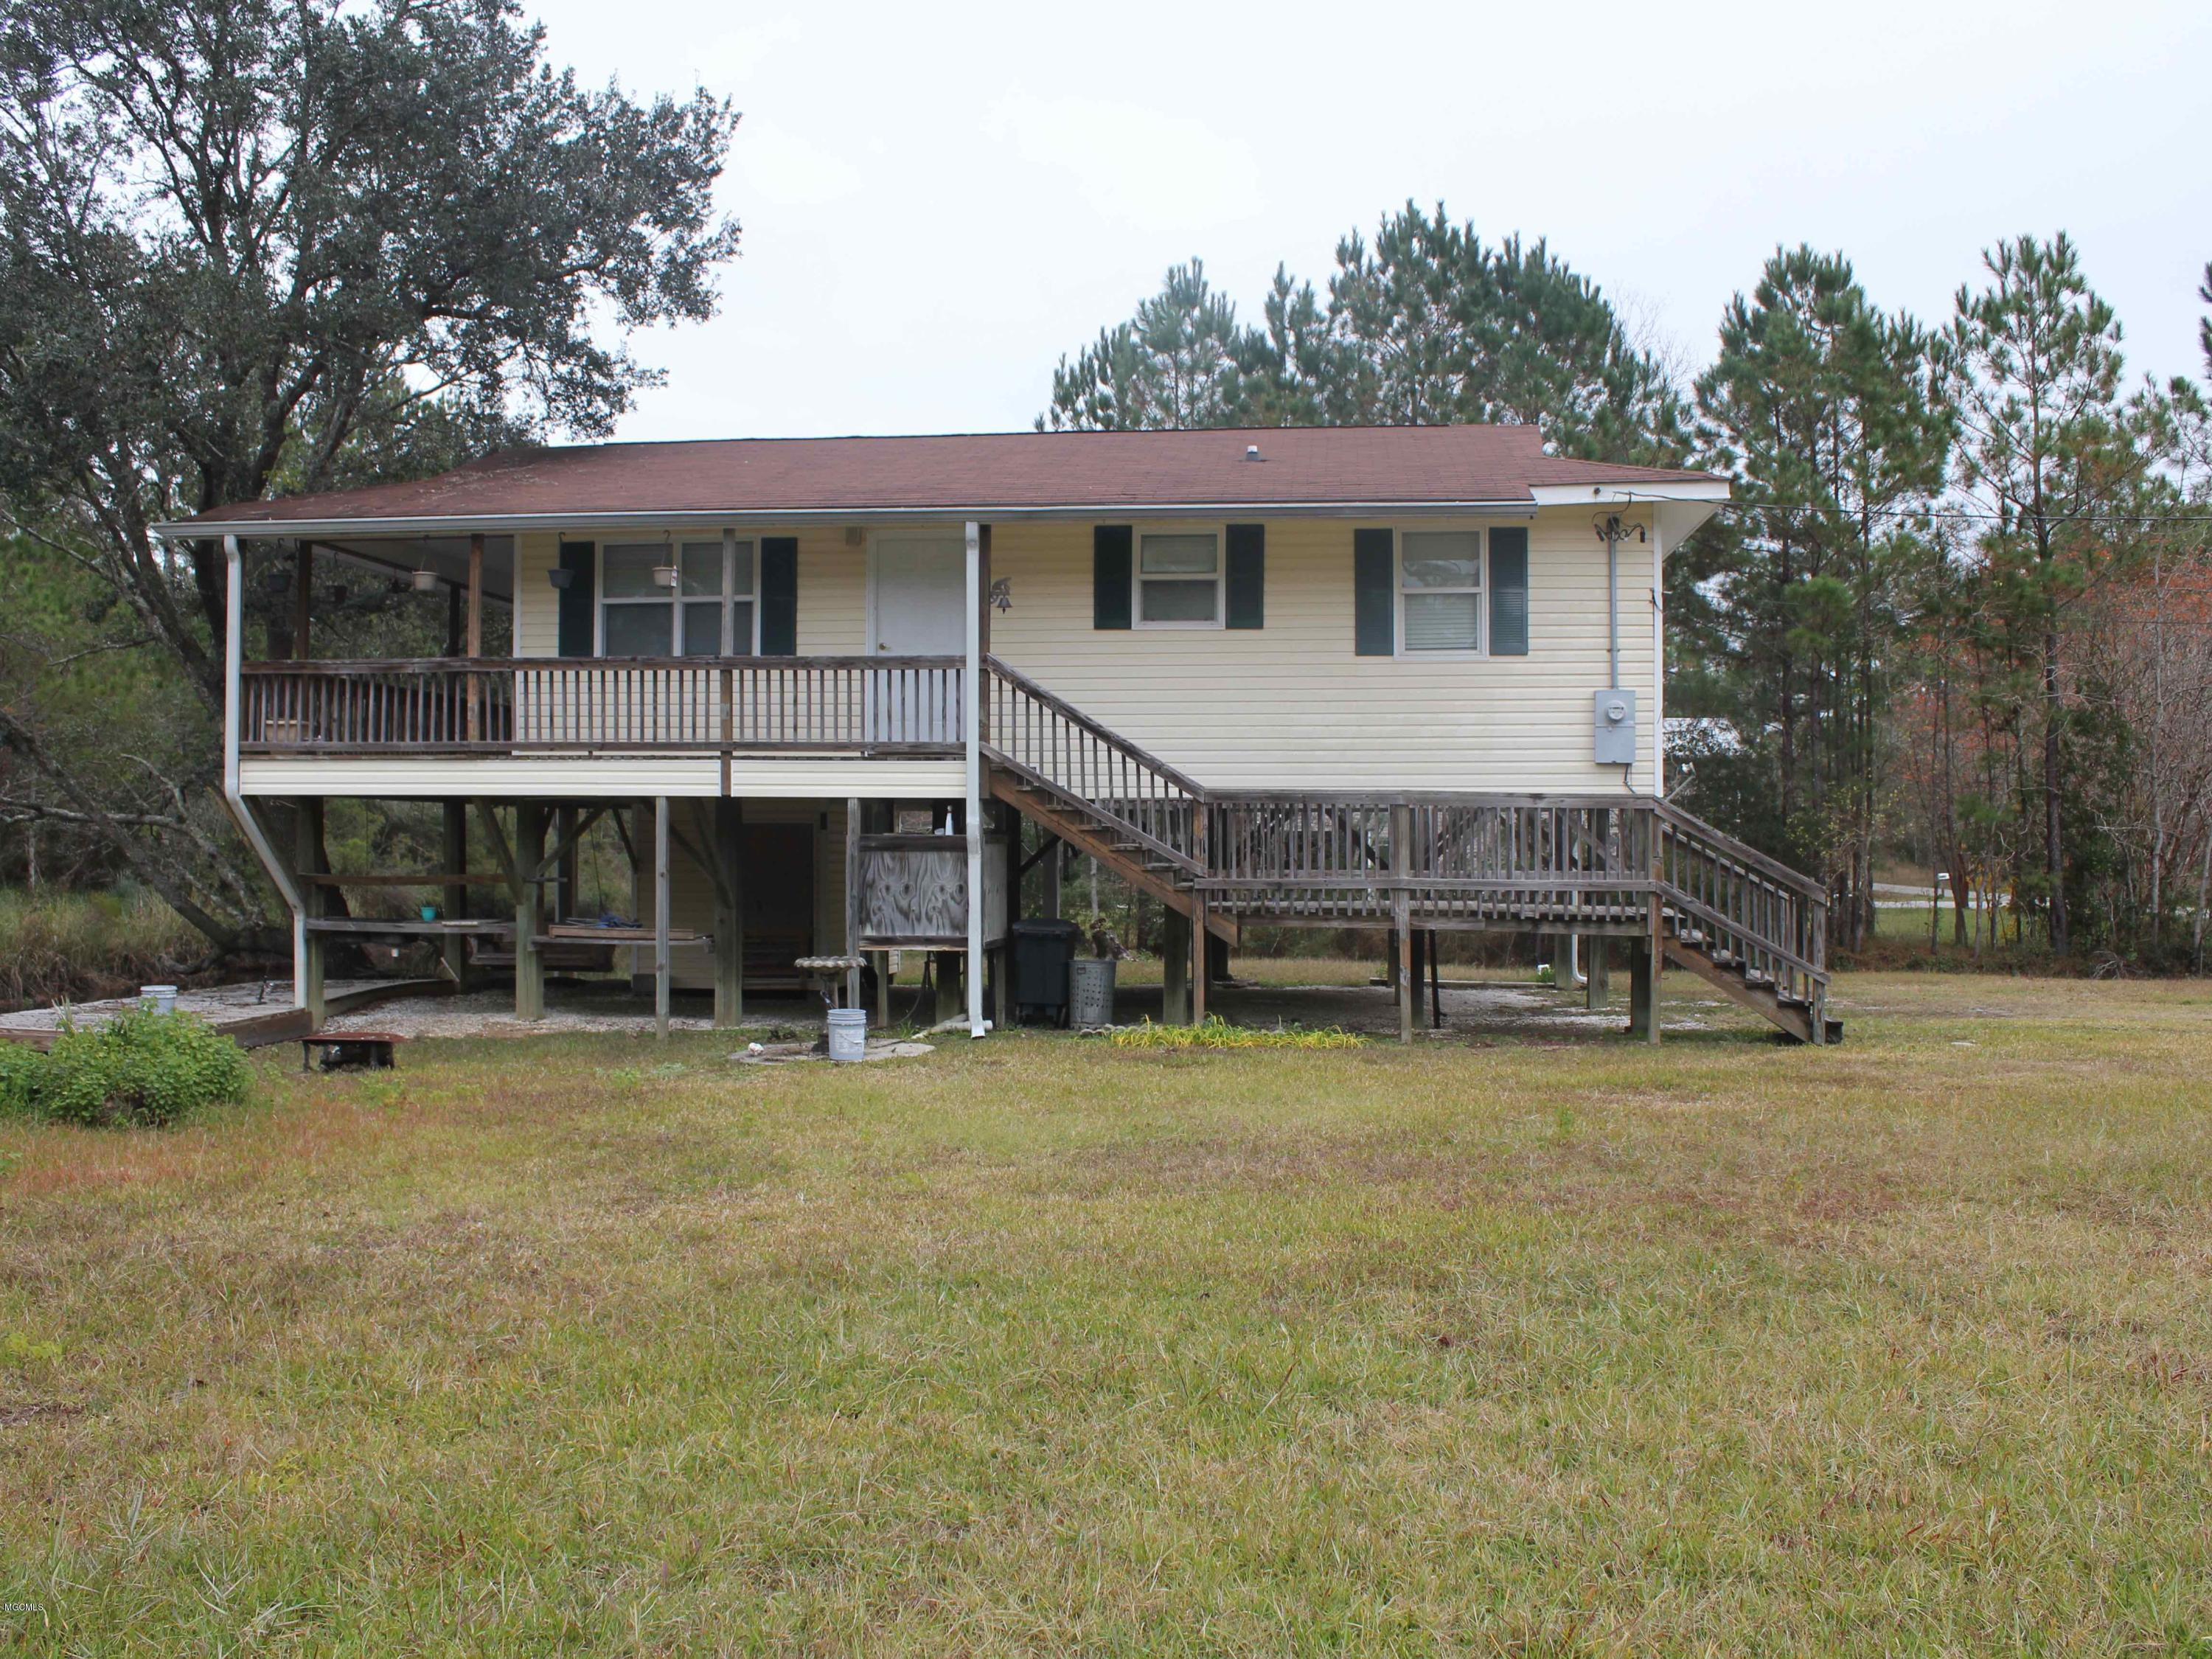 6083 1st St, Bay St. Louis, Mississippi 39520, 2 Bedrooms Bedrooms, ,1 BathroomBathrooms,Single-family,For Sale,1st,342062